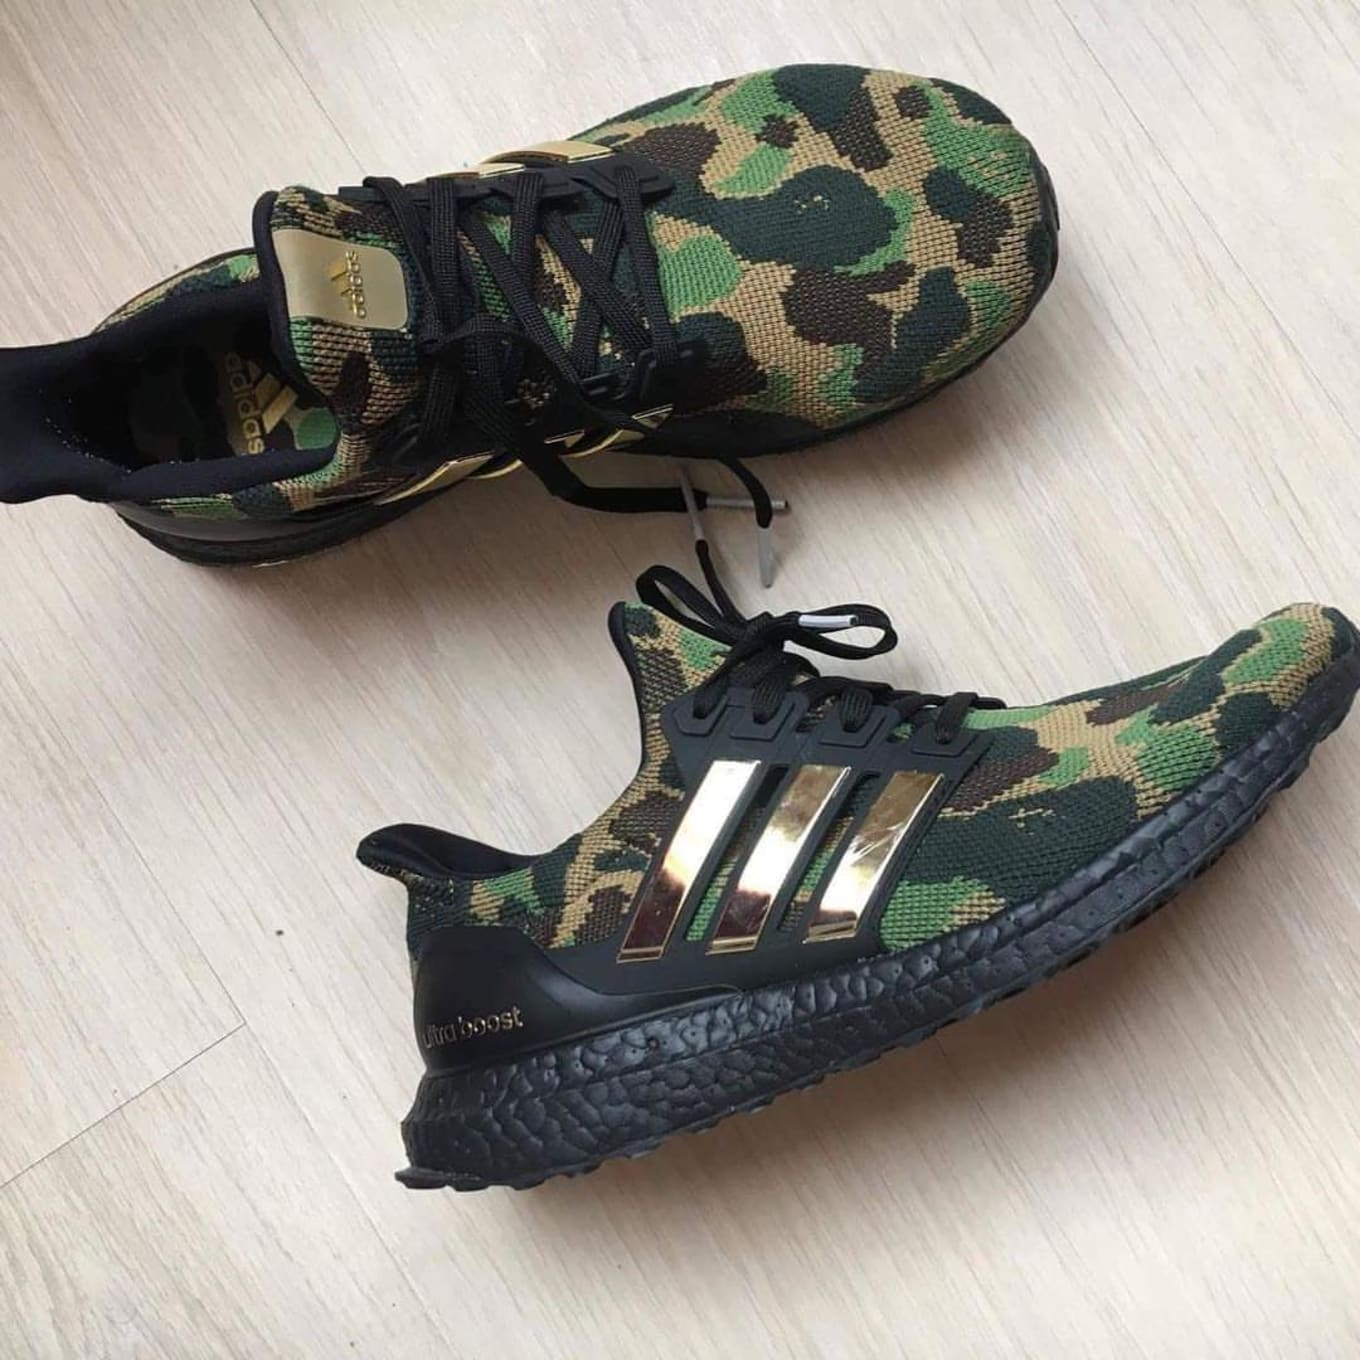 50f0854c936eb Bape x Adidas Ultra Boost Collaboration Release Date